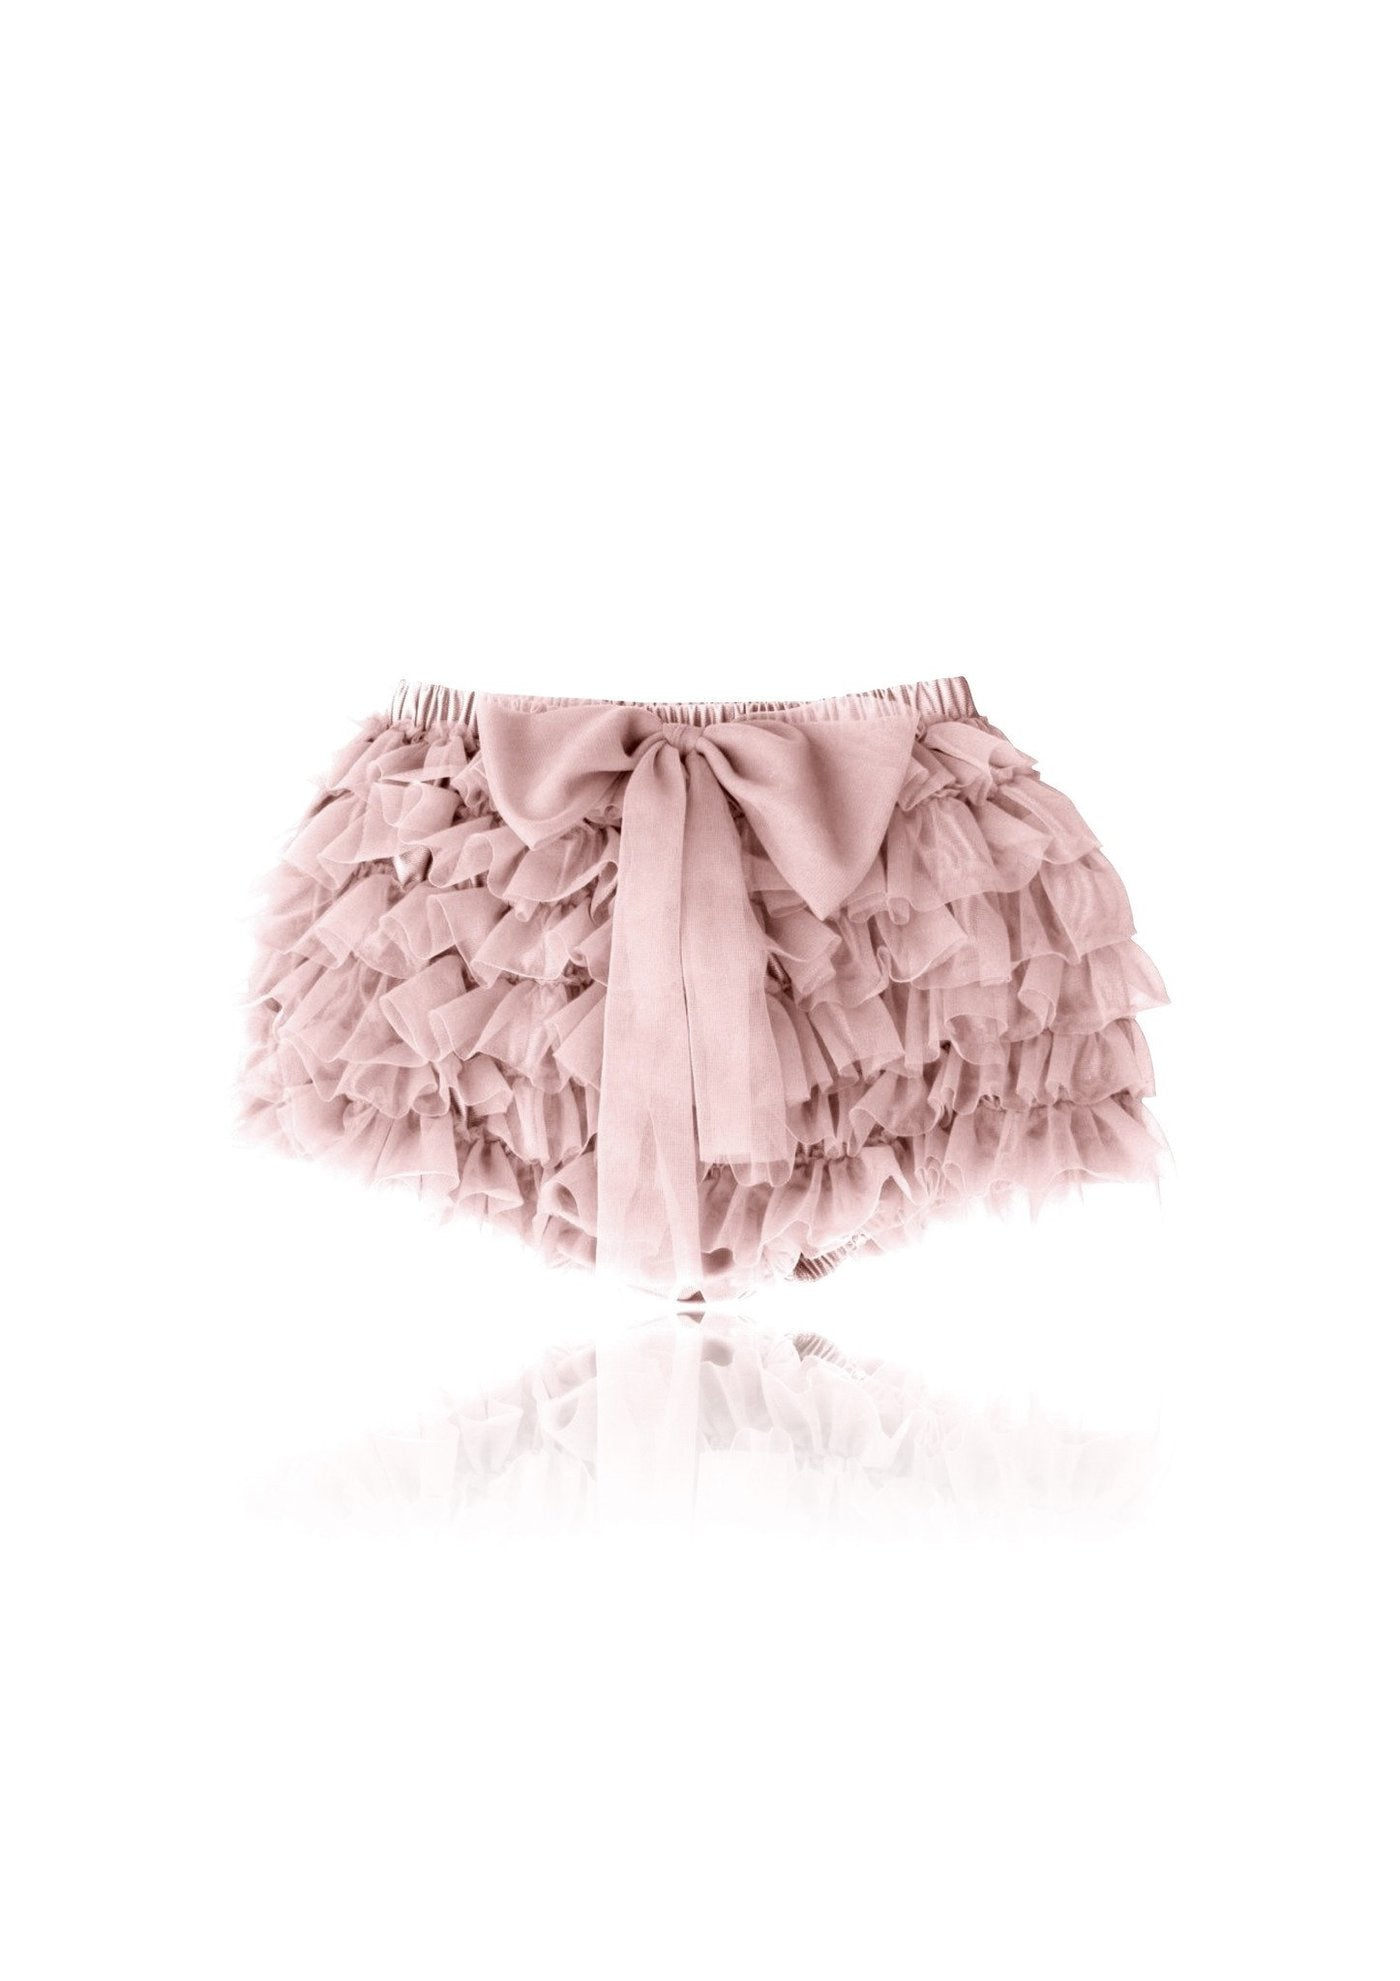 DOLLY by Le Petit Tom ® FRILLY PANTS Tutu Bloomer ballet pink